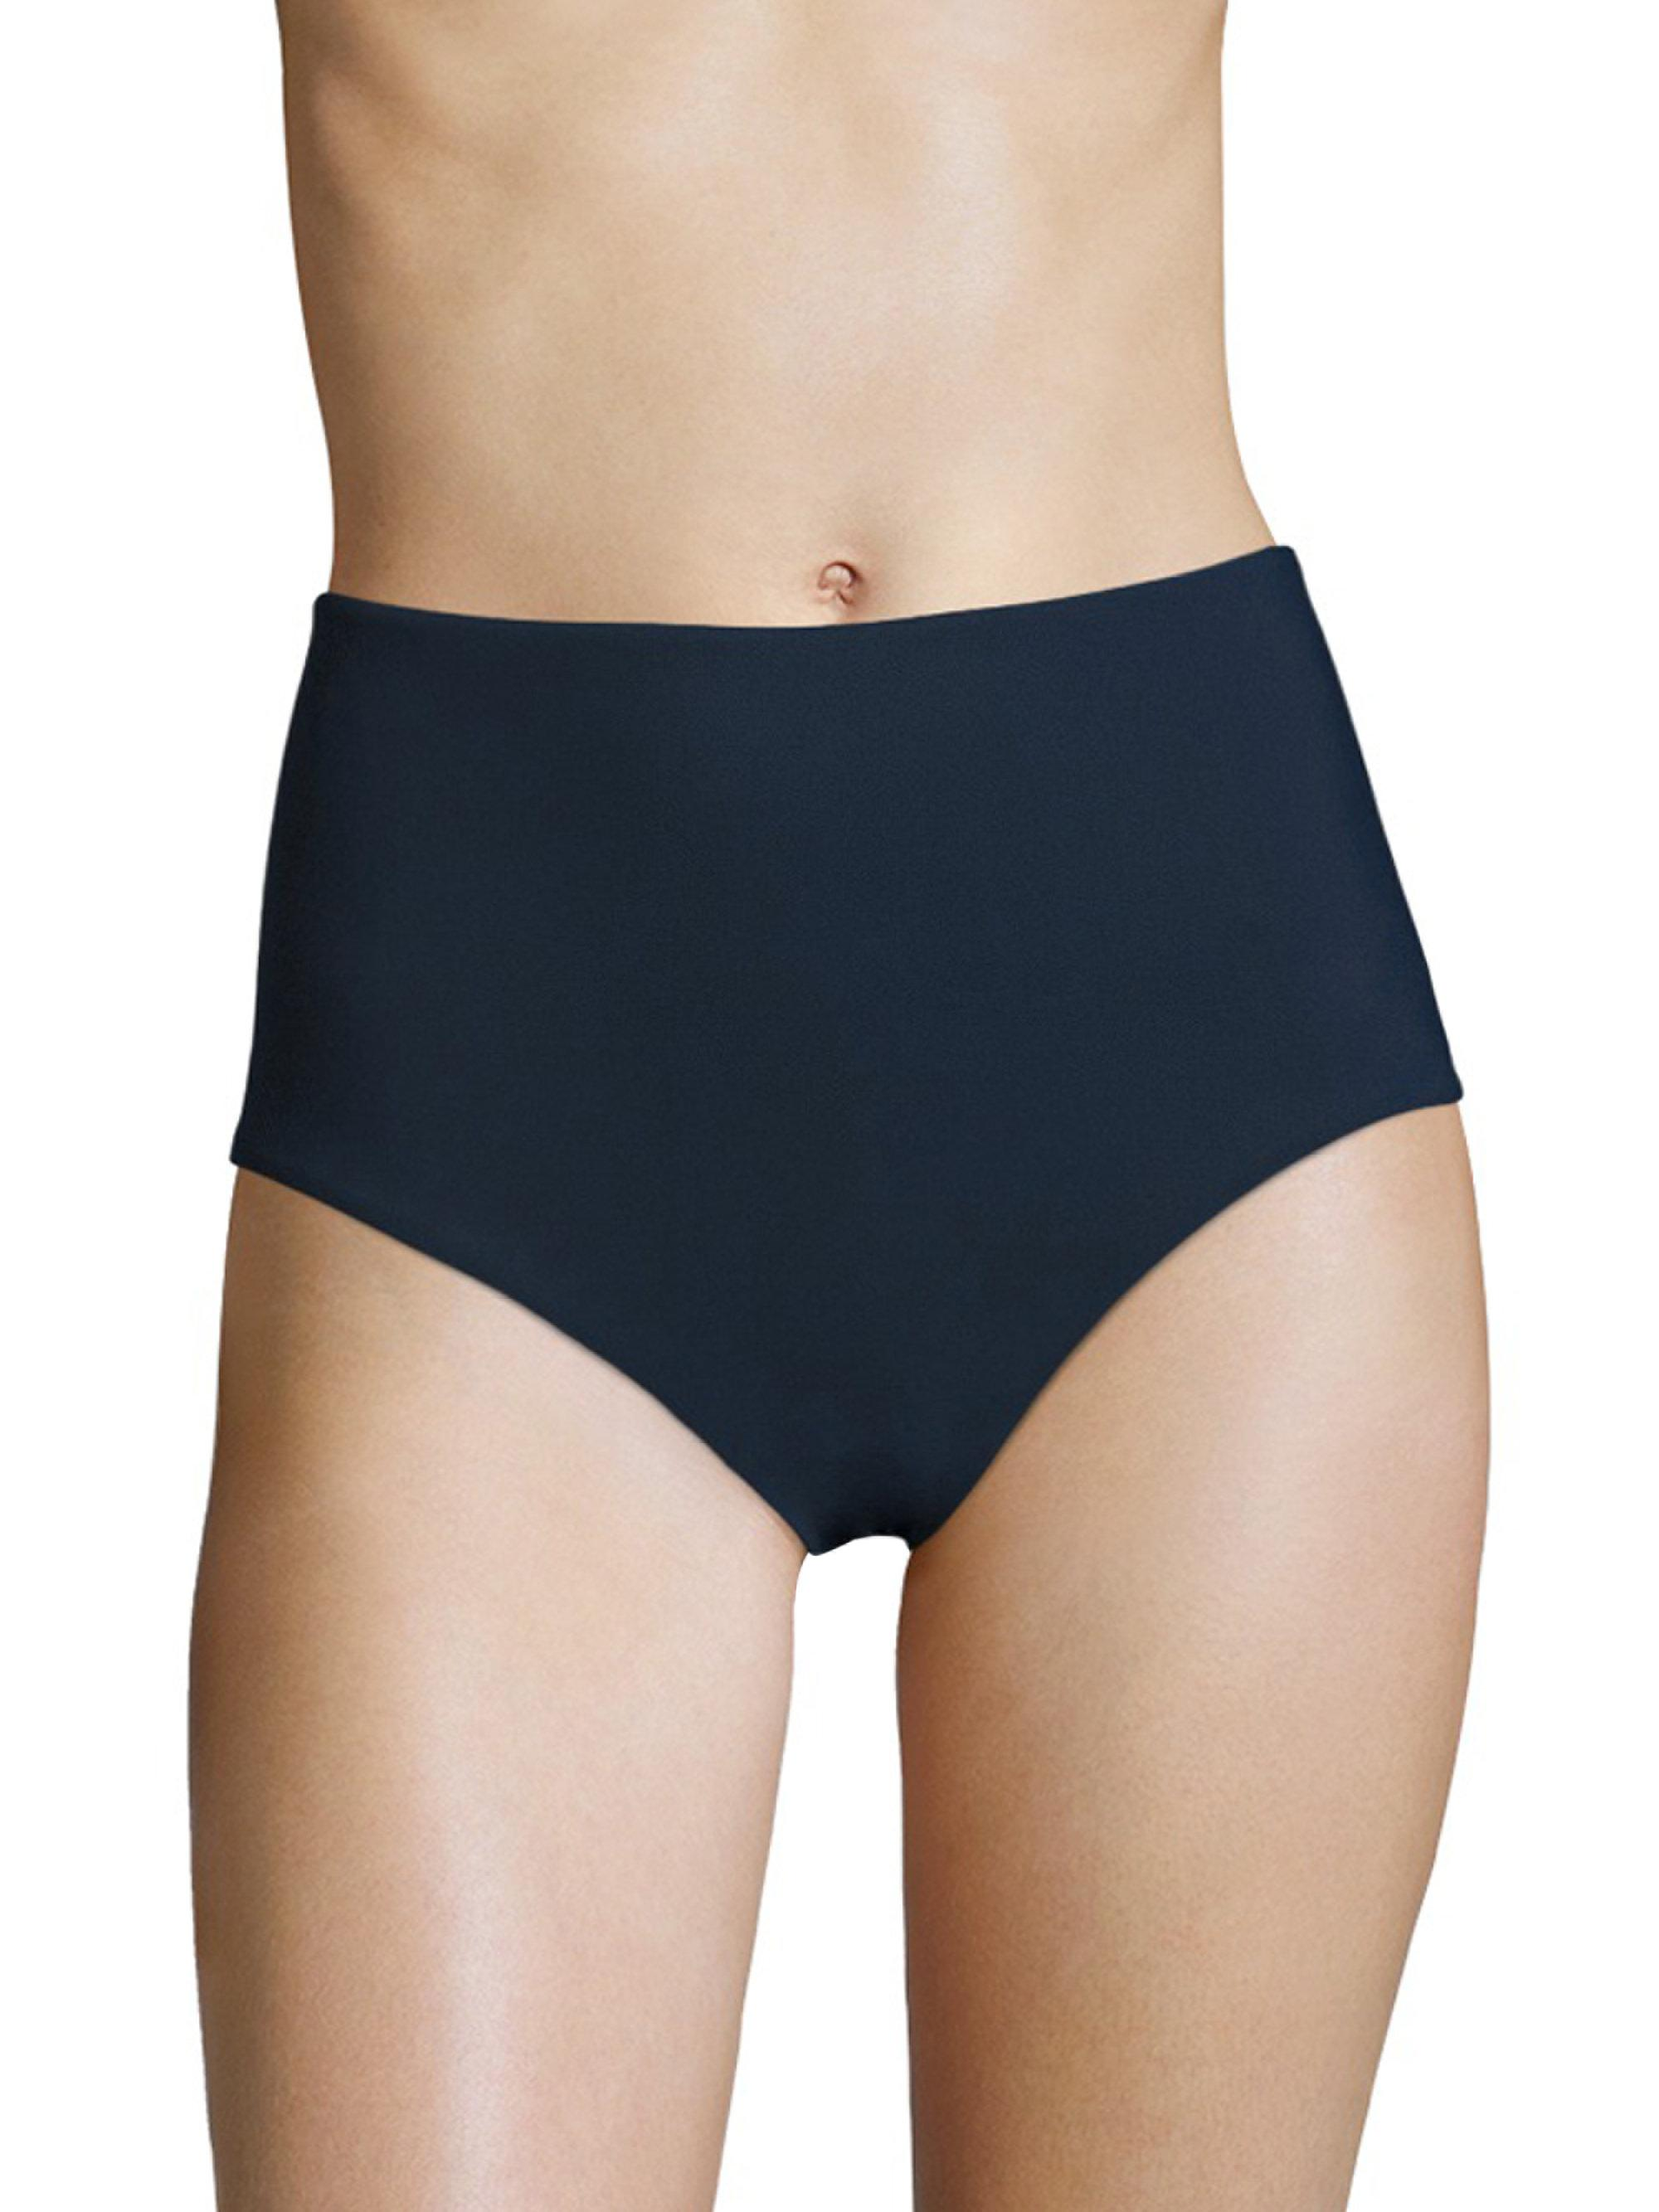 b6619a7ad00 Gallery. Previously sold at: Saks Fifth Avenue · Women's High Waisted  Bikini Bottoms ...